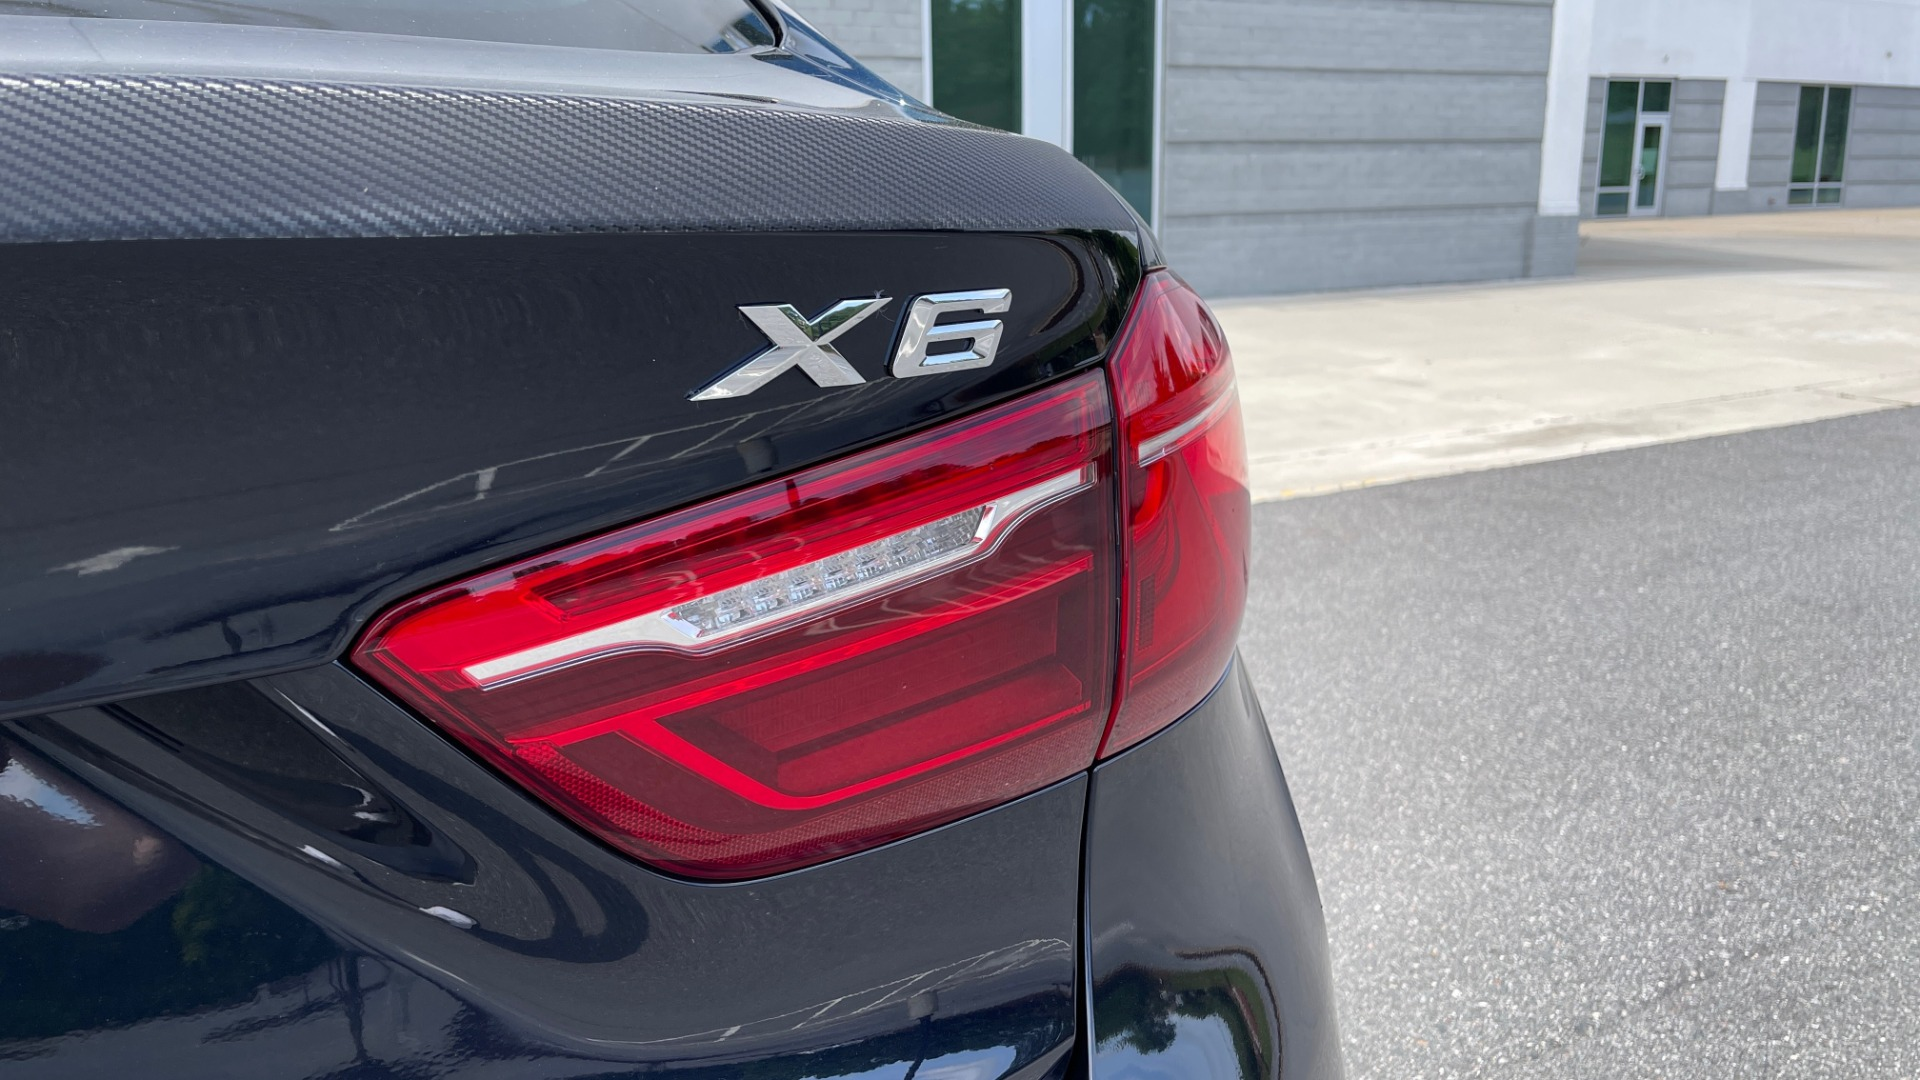 Used 2018 BMW X6 XDRIVE35I M-SPORT / DRVR ASST / PRK ASST / H/K SND / APPLE / WIRELESS CHARG for sale $51,995 at Formula Imports in Charlotte NC 28227 26